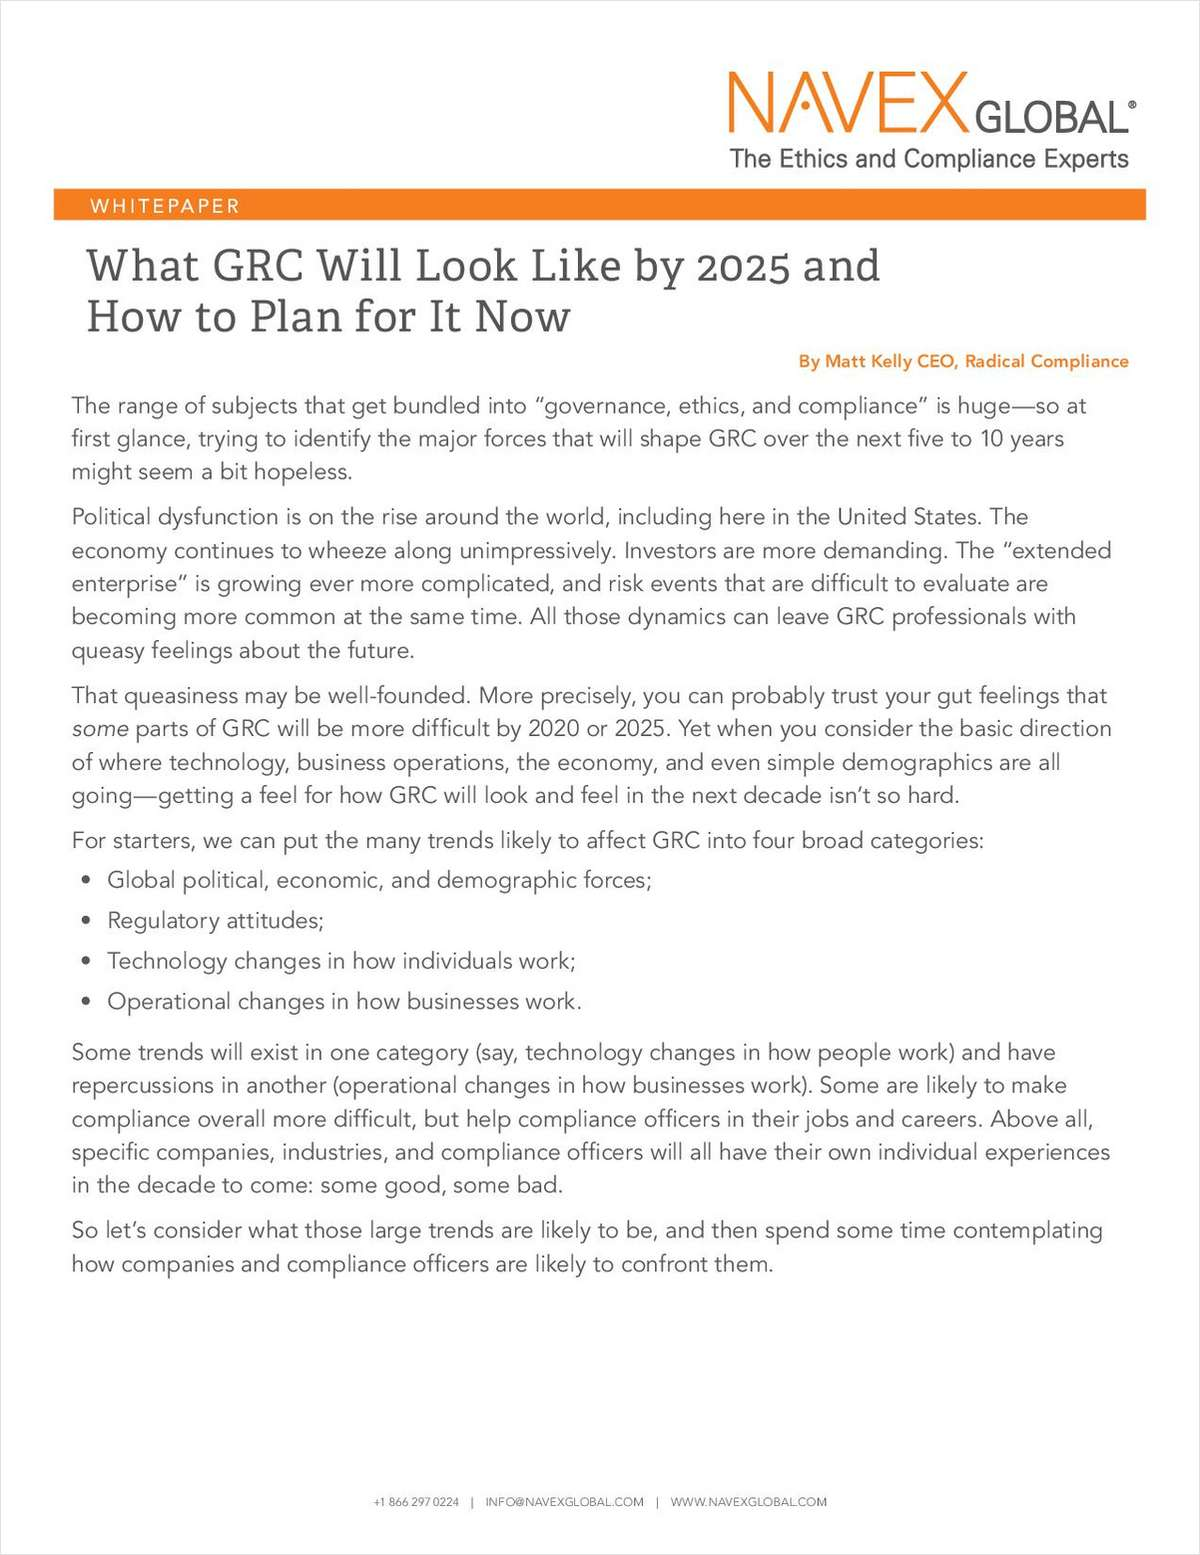 What GRC Will Look Like by 2025 and How to Plan for It Now